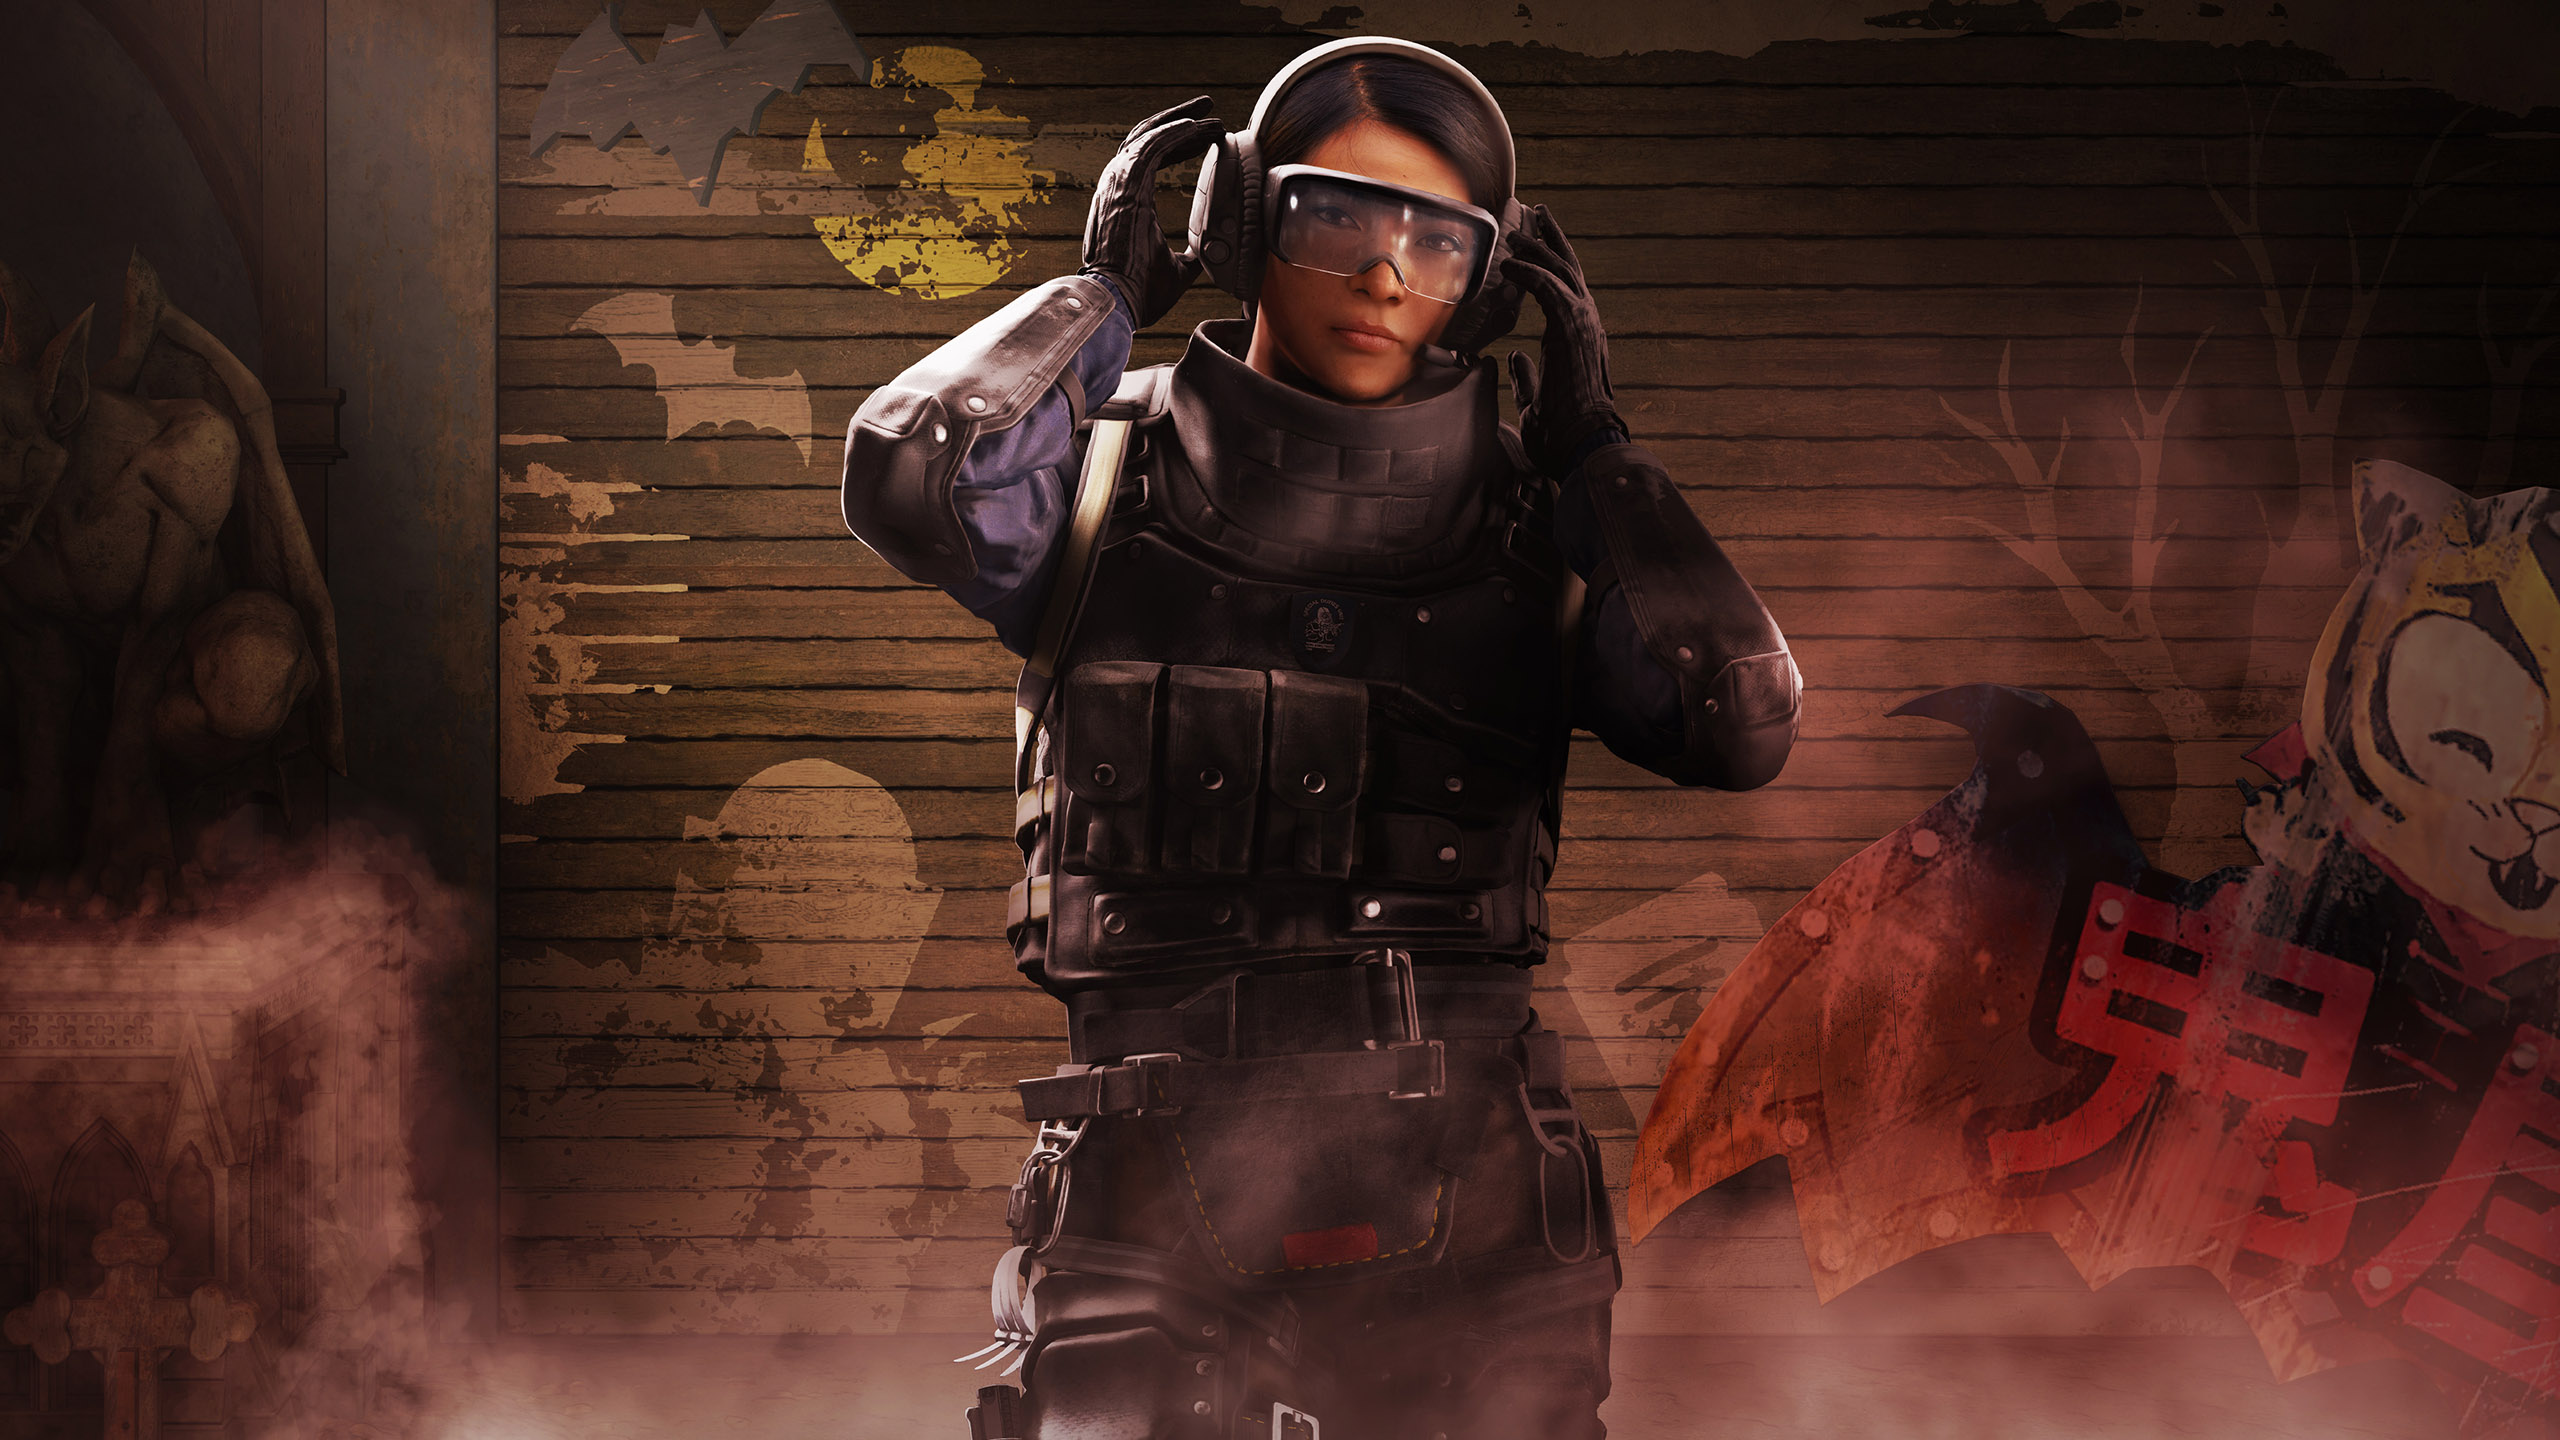 Ying is one of the new Operators coming with the Blood Orchid update on September 5, 2017.